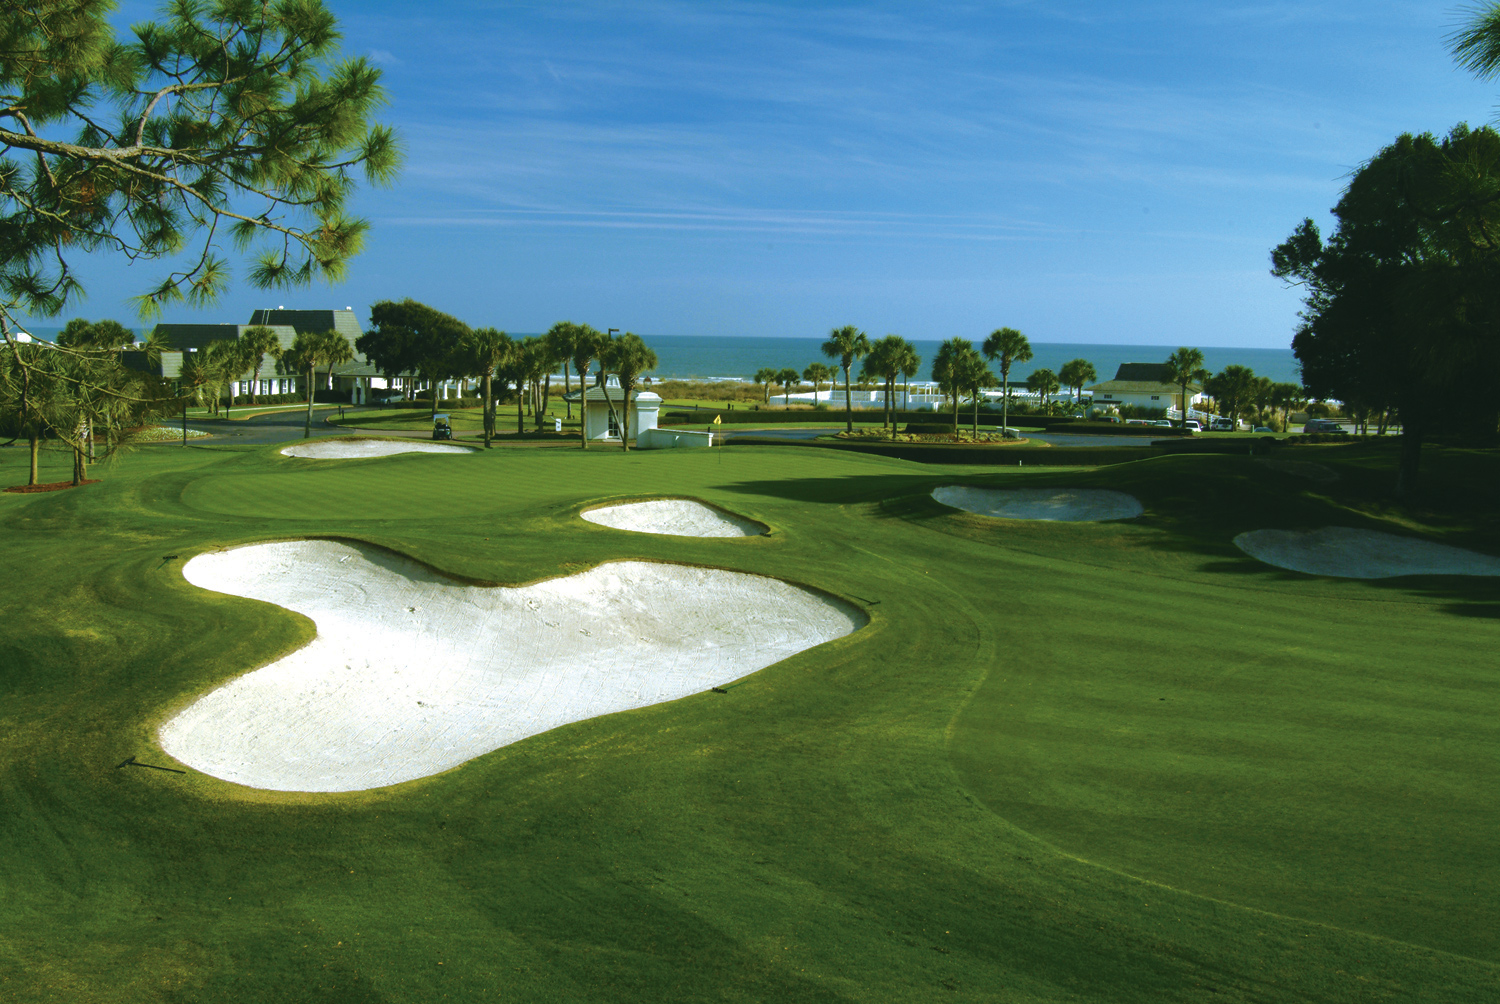 Why Myrtle Beach Tee Times Now?